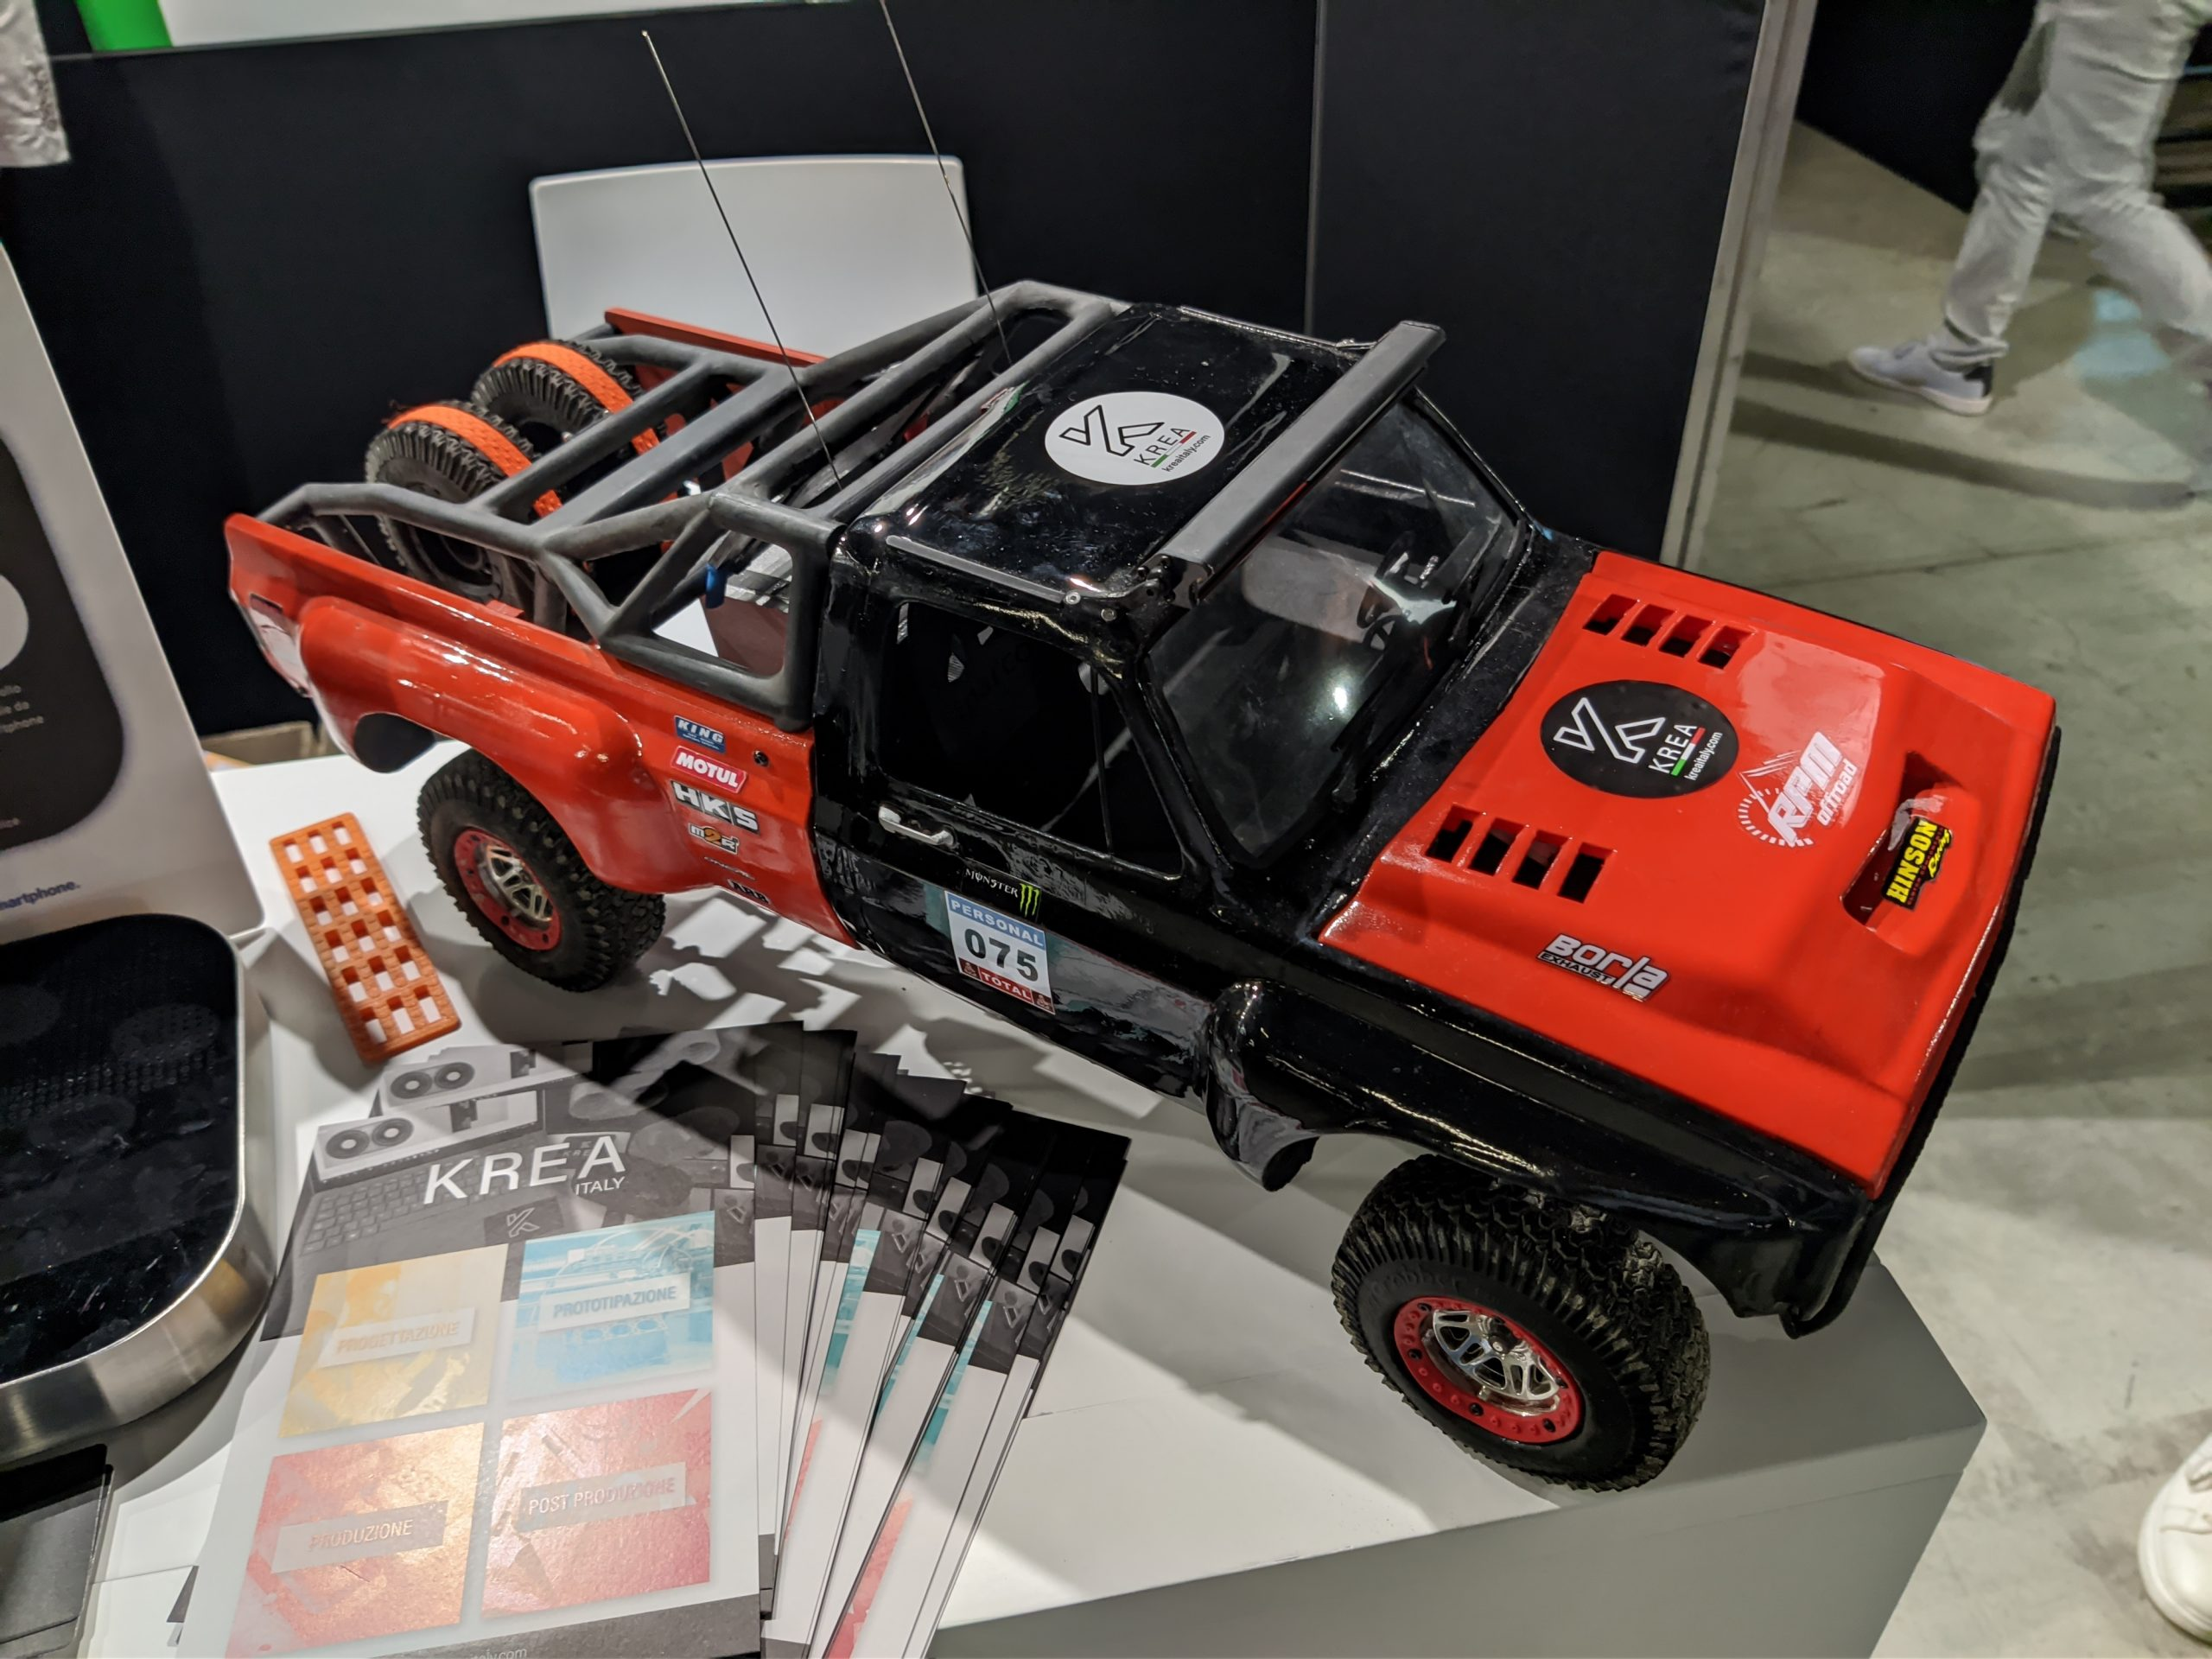 Modellismo Dinamico Off Road Stampa 3D - KreaItaly, Stampa 3d - Stampanti 3d Marche - Stampanti 3D prezzi - Aziende stampa 3d